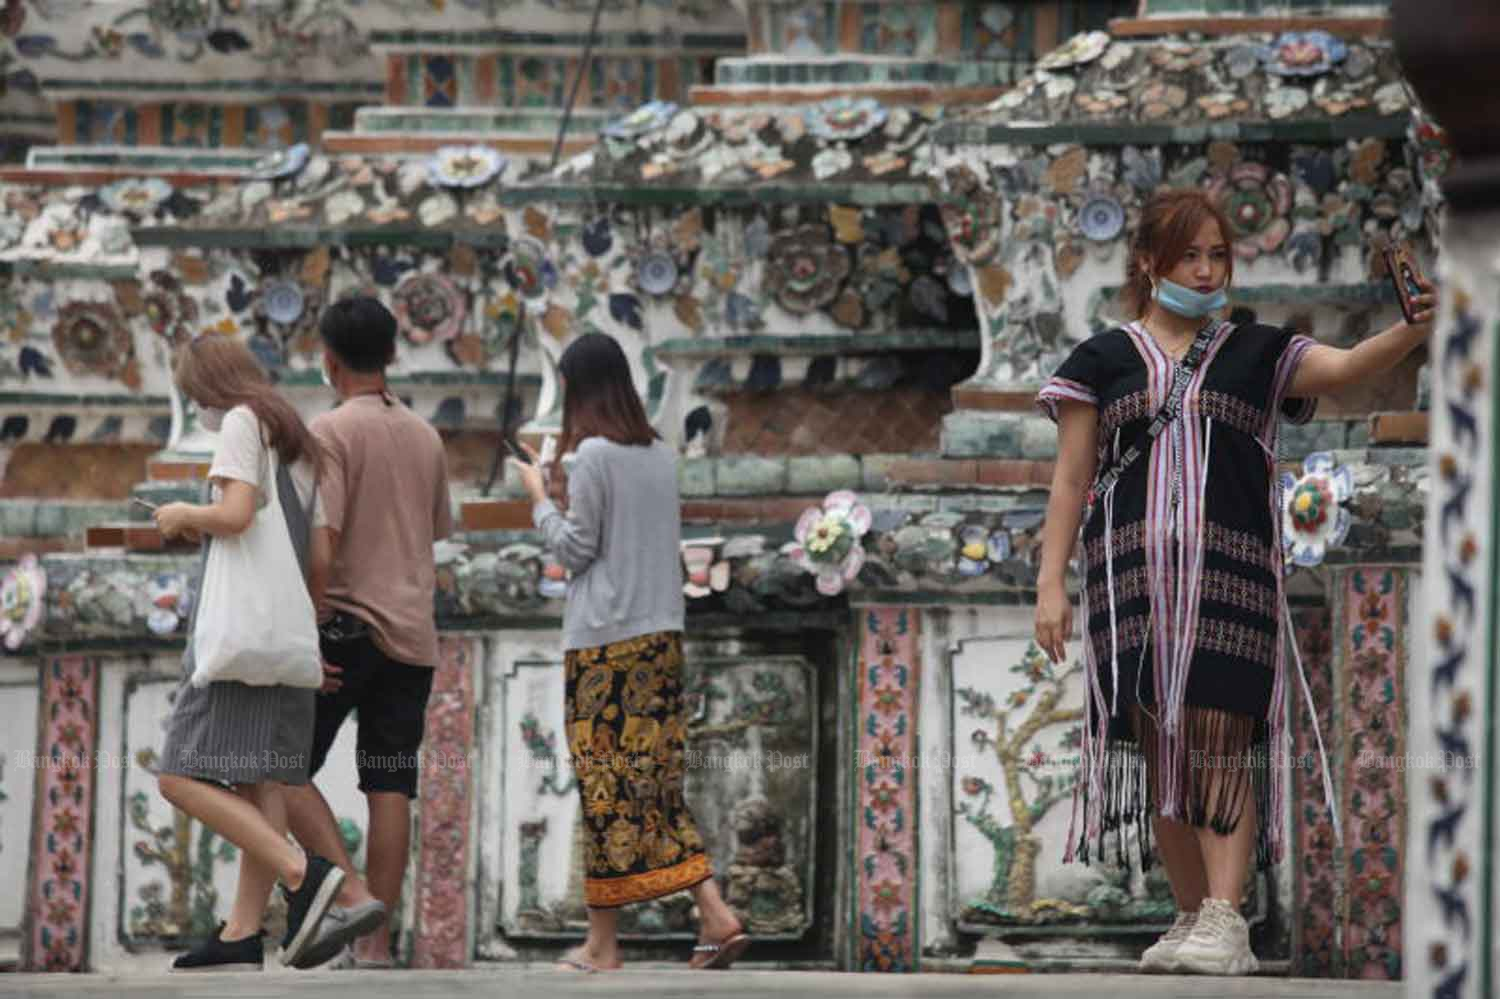 A visitor takes a selfie at the Temple of Dawn in Bangkok on Tuesday. (Photo: Arnun Chonmahatrakool)